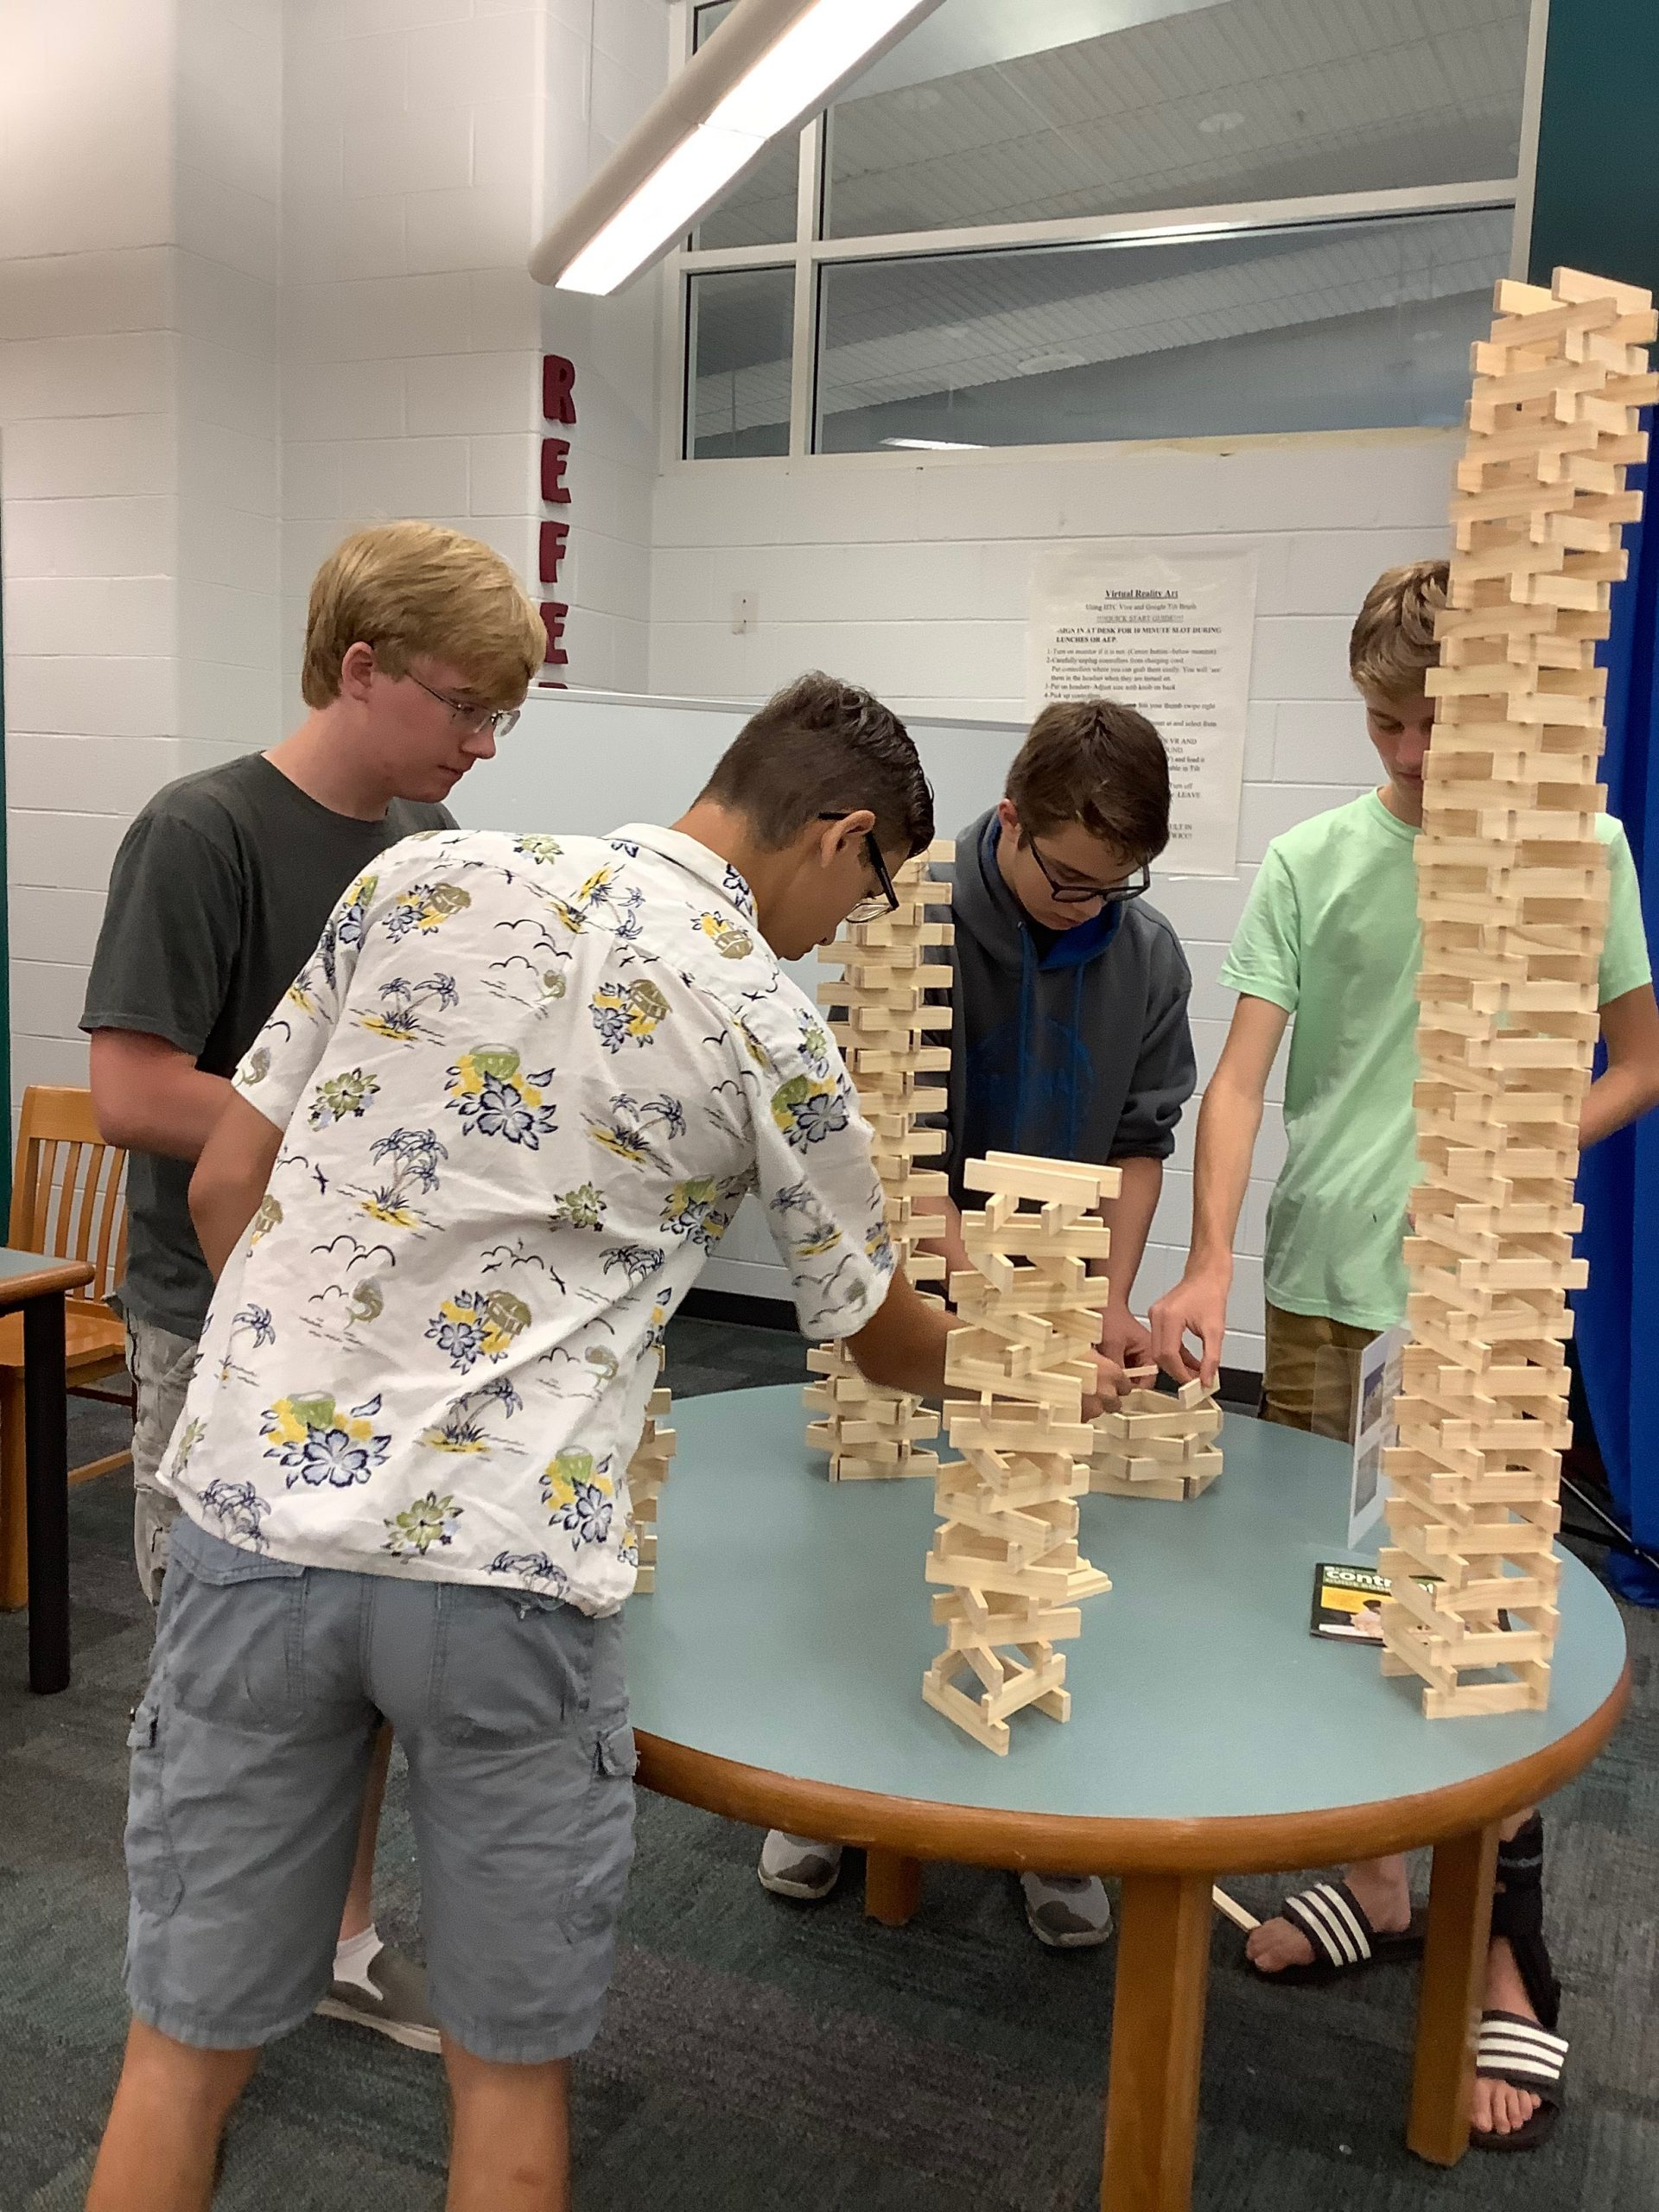 four male students standing around a table with several wooden plank structures one very tall